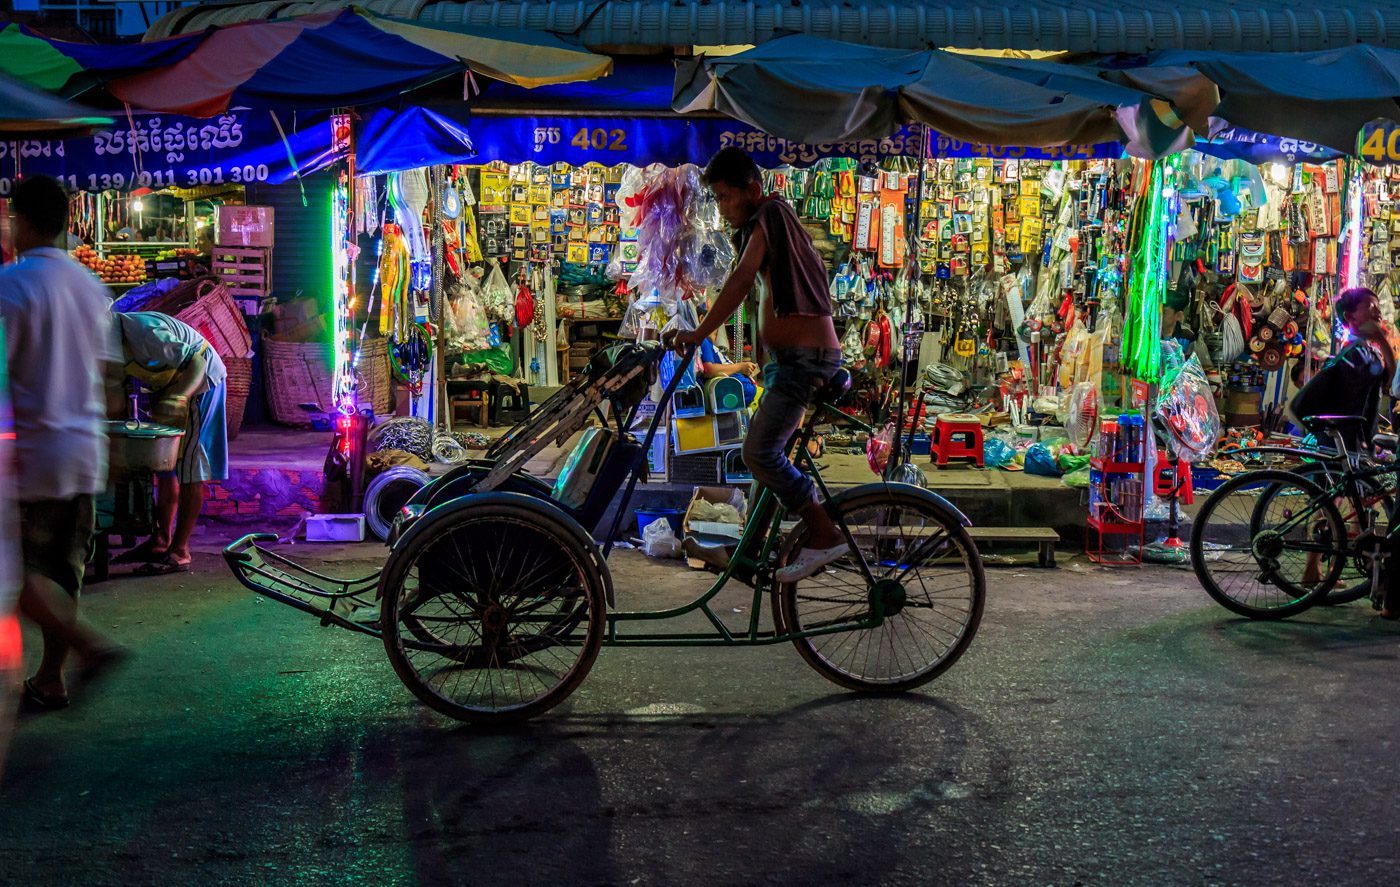 A cyclo at the market.